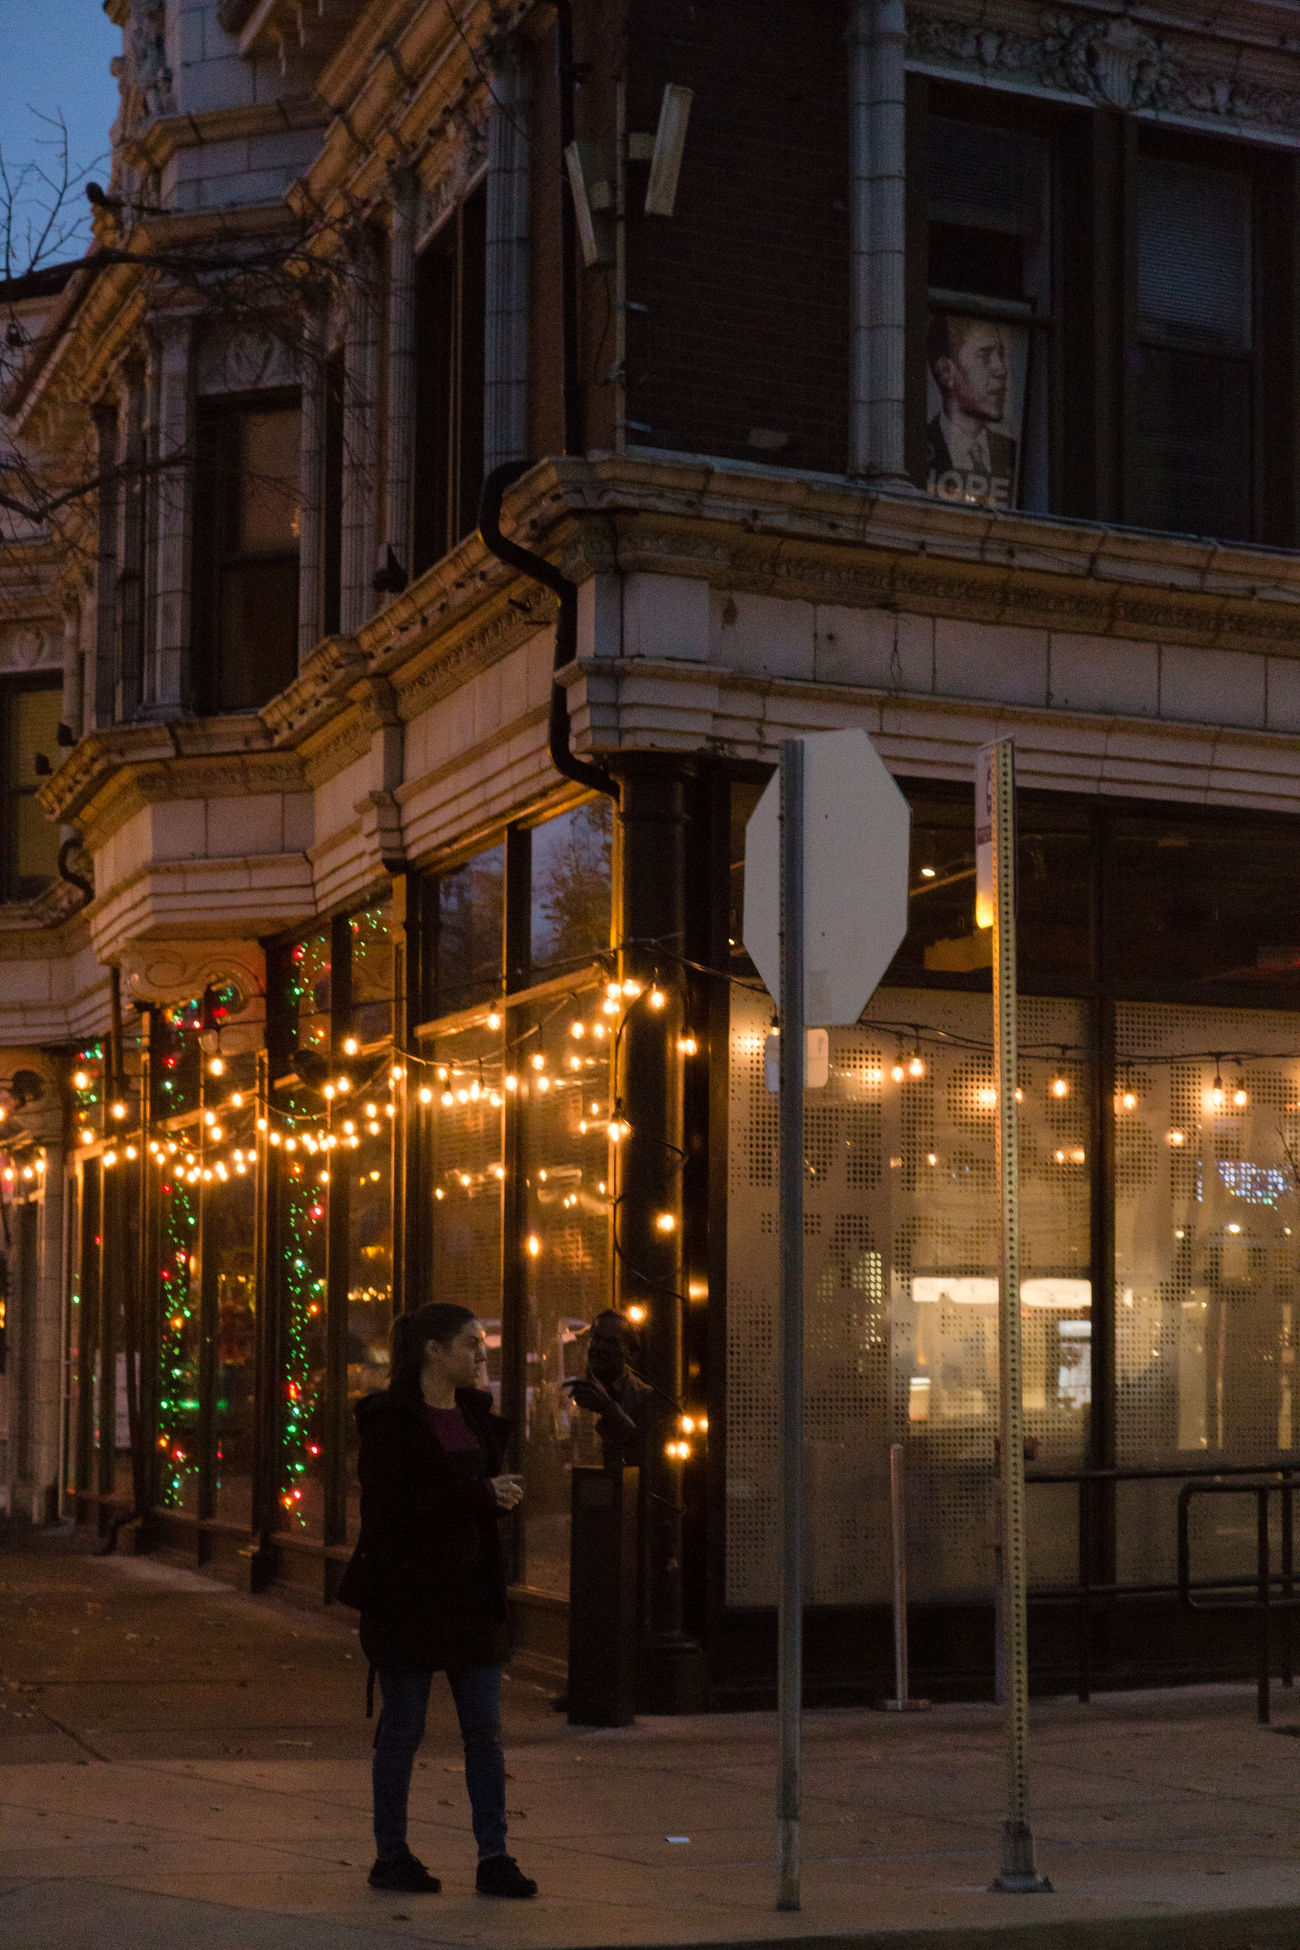 A scene in St. Louis A Woman Adult Adults Only Architecture Christmas City City Corner Hope Illuminated Life In City Night Obama One Person Only Women Outdoors People Real People Standing Street Photography Urban Winter